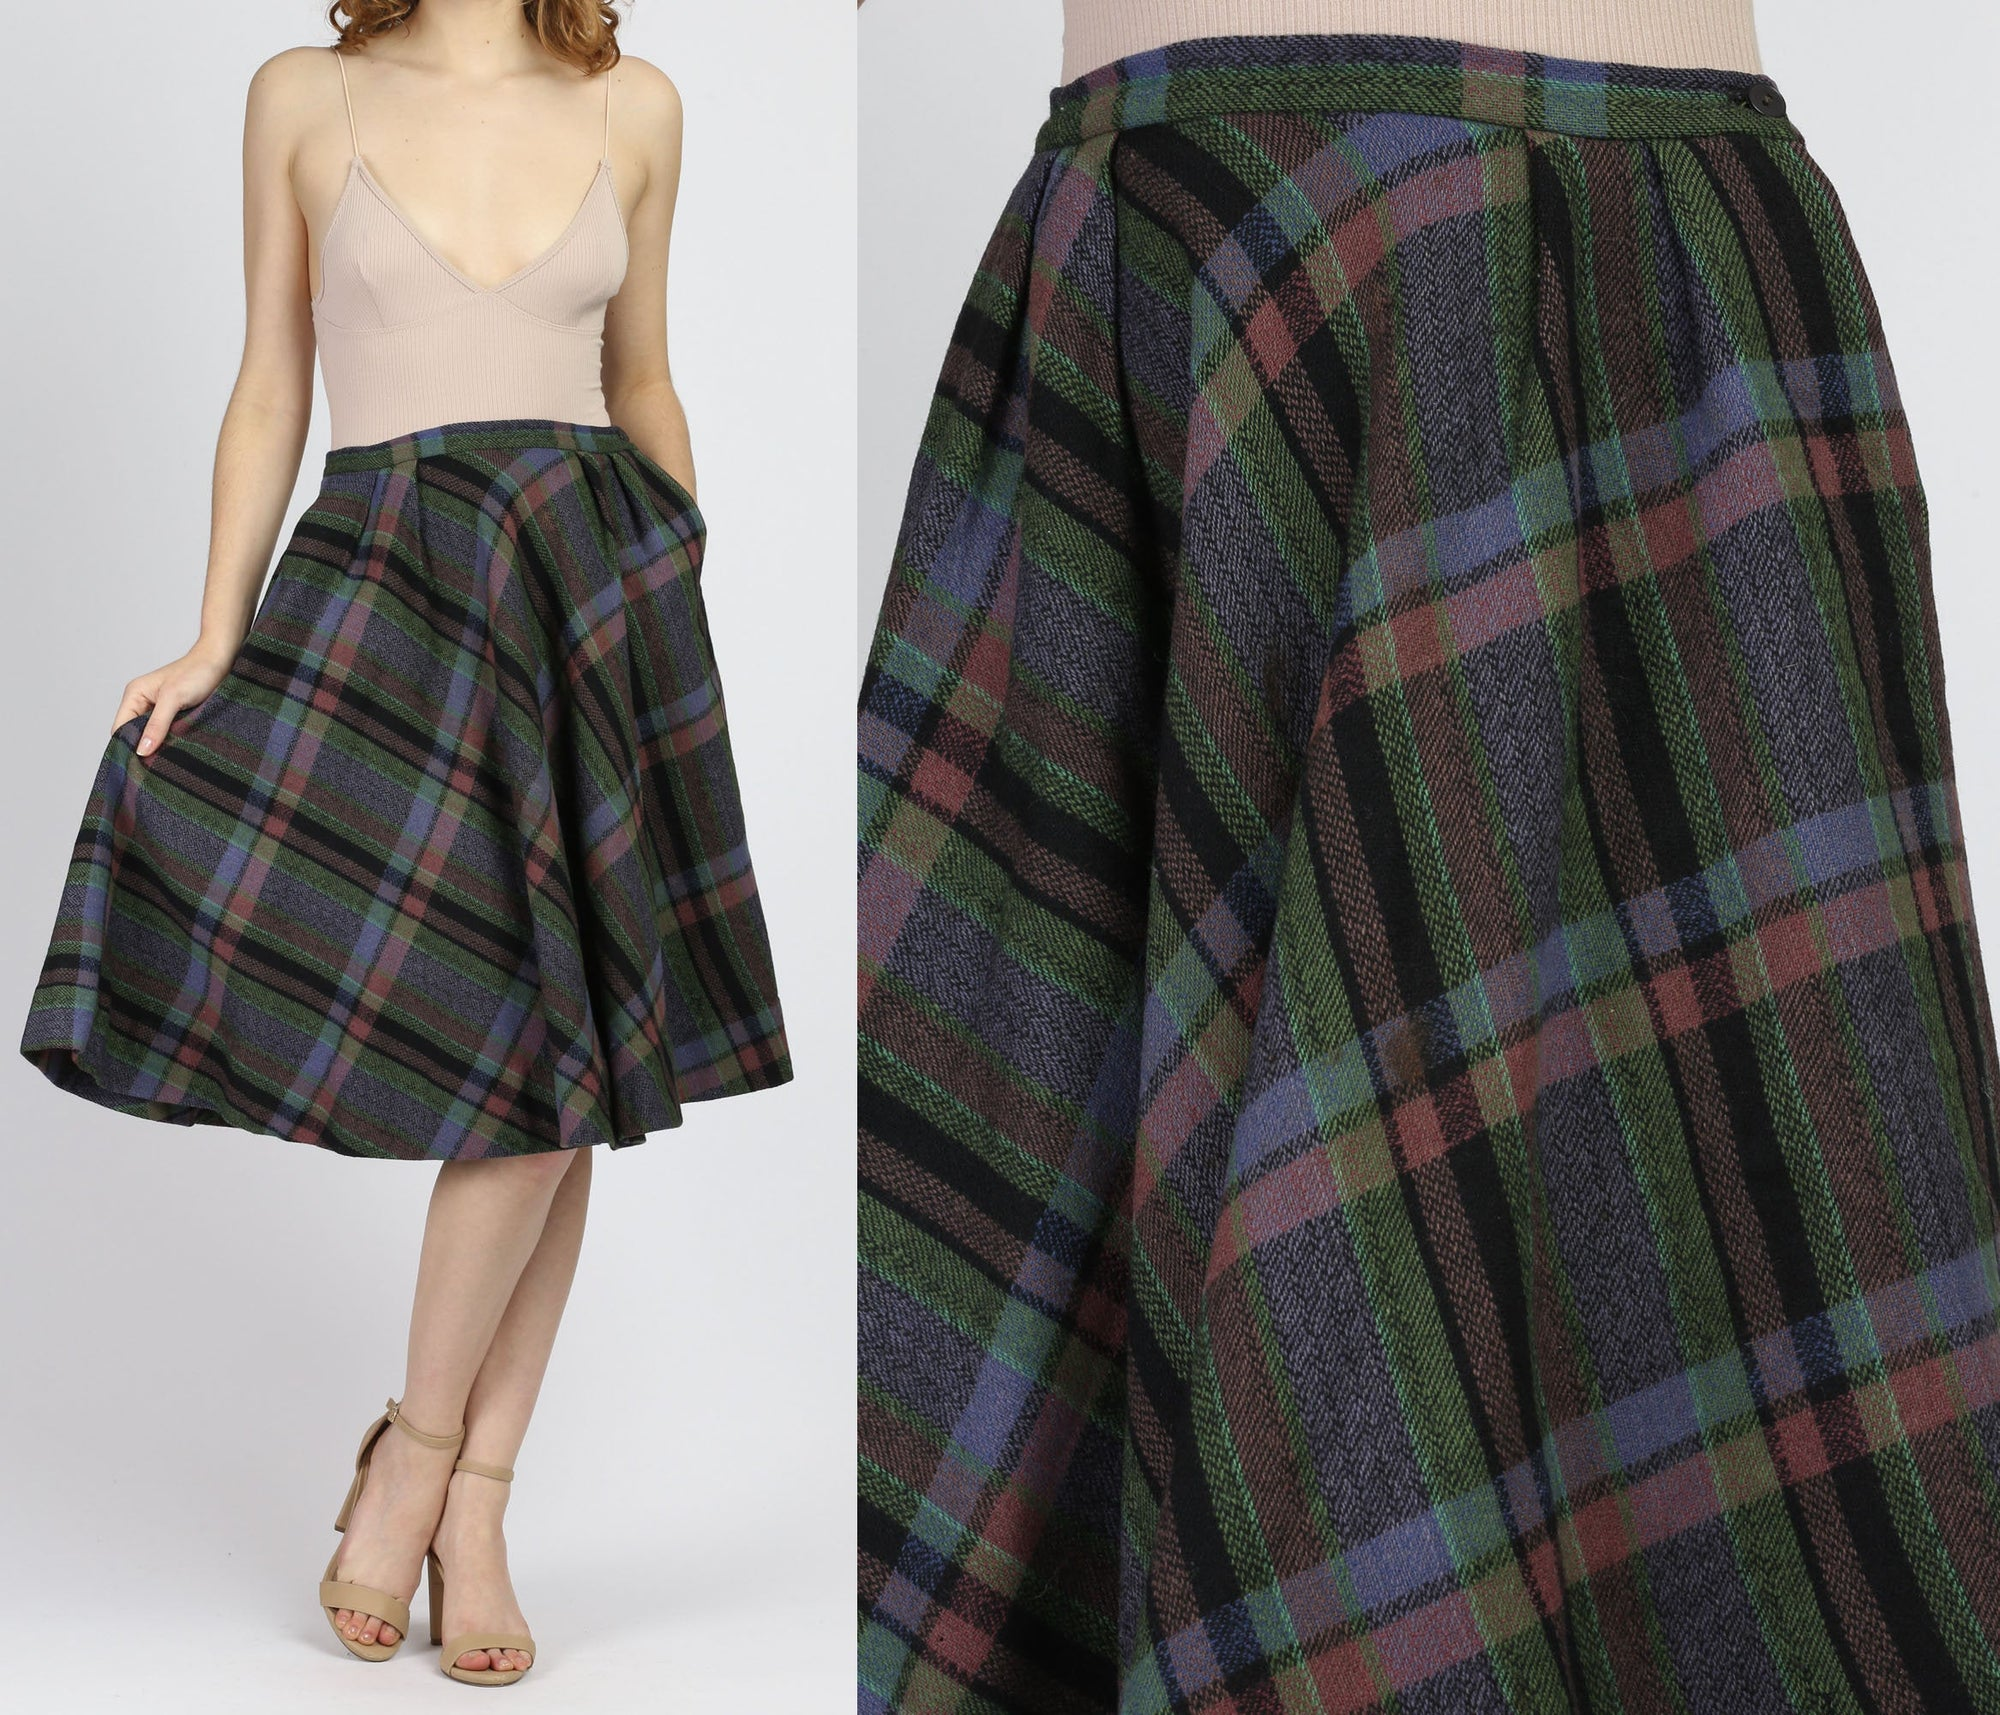 70s Plaid Wool Midi Skirt - Small, 27""